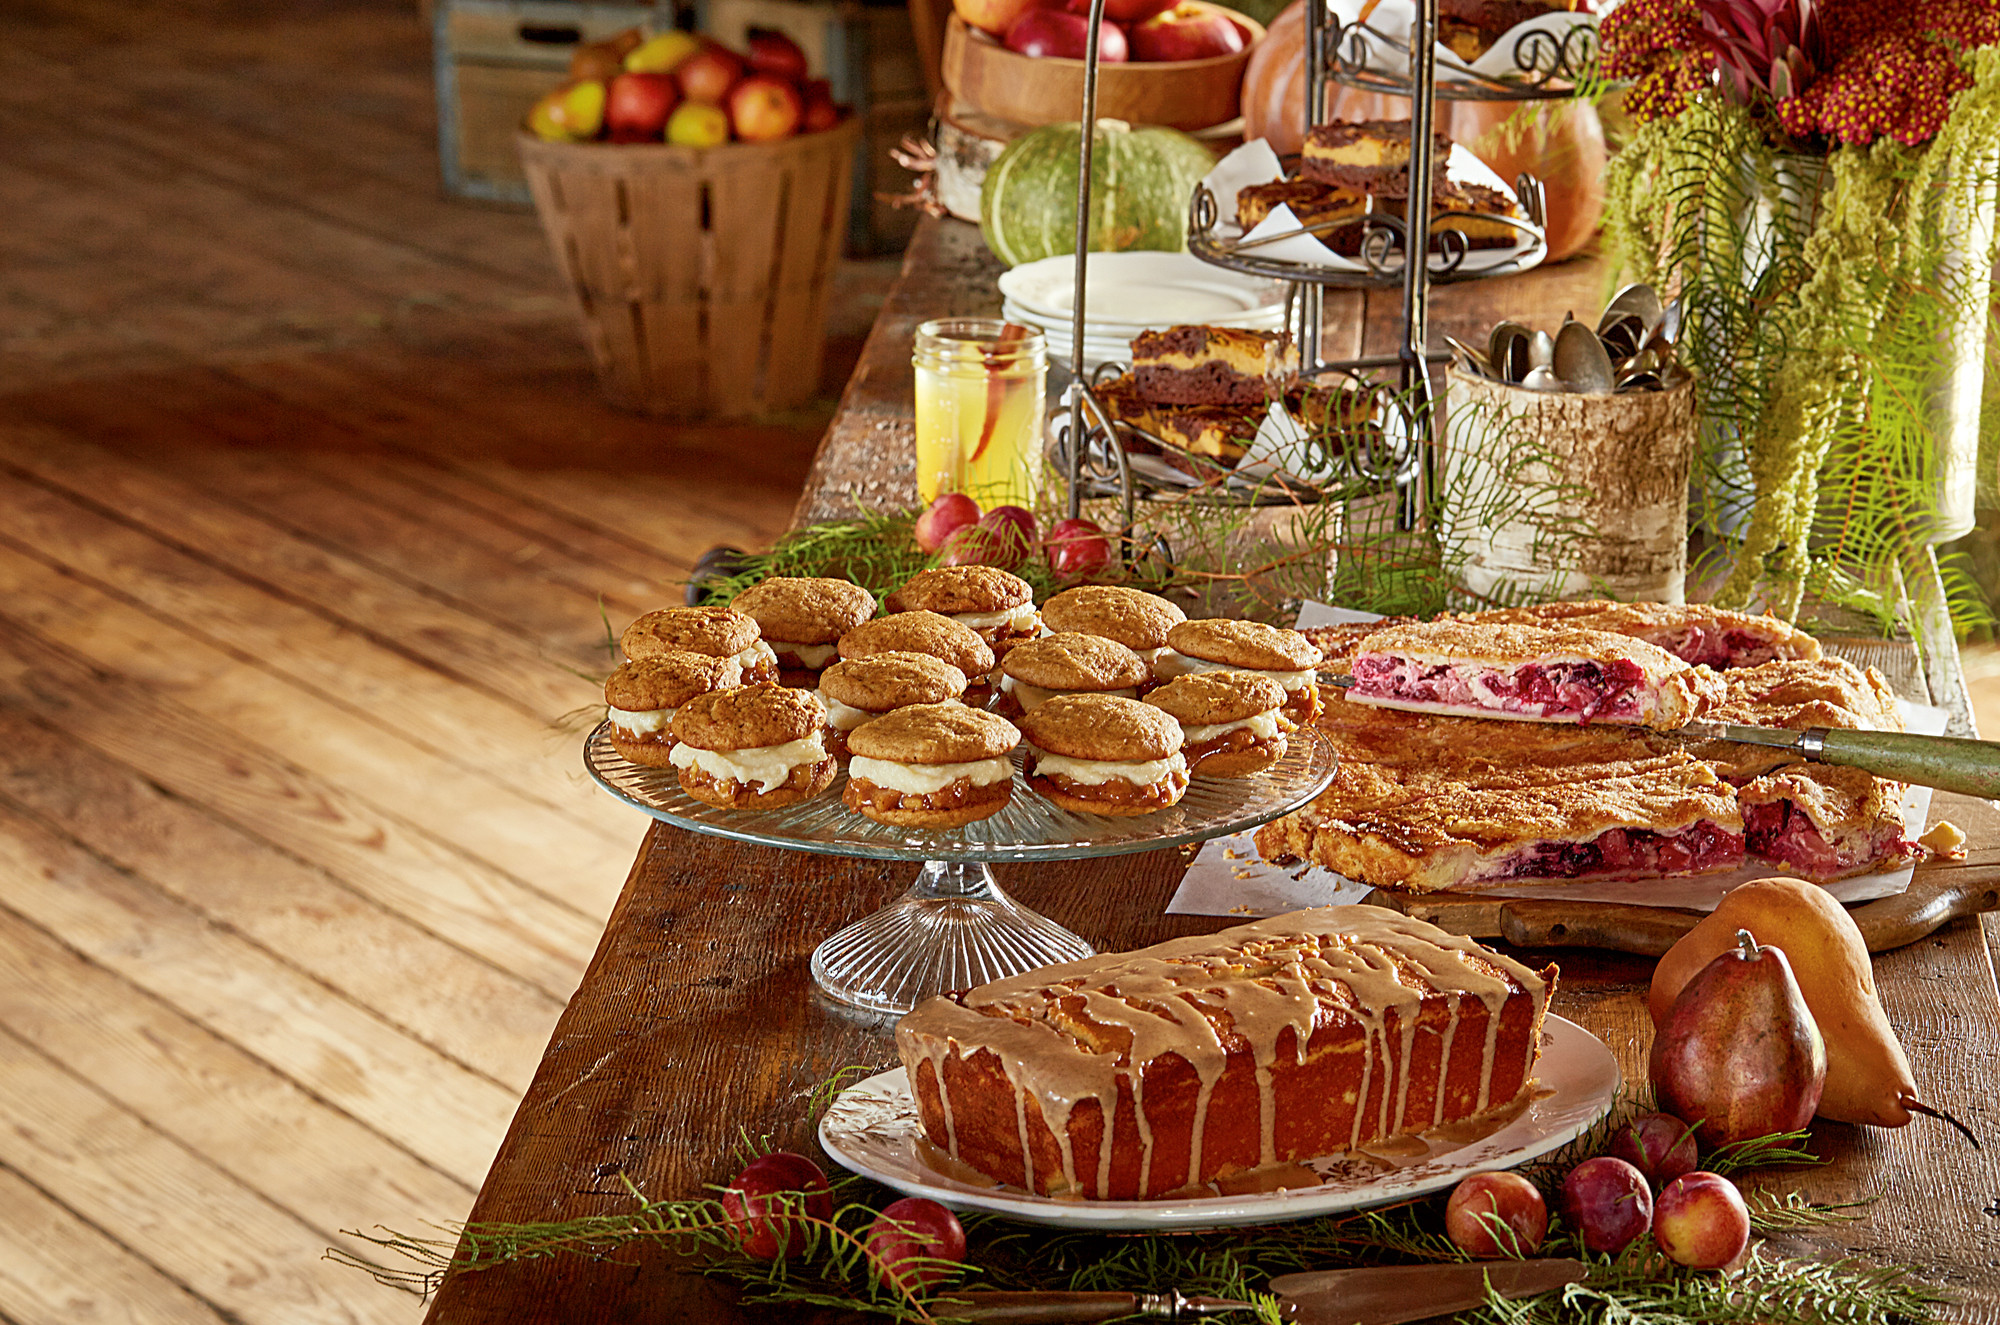 Fall Party Desserts  Fall Harvest Party Inspiration A Fall Menu with Wisconsin